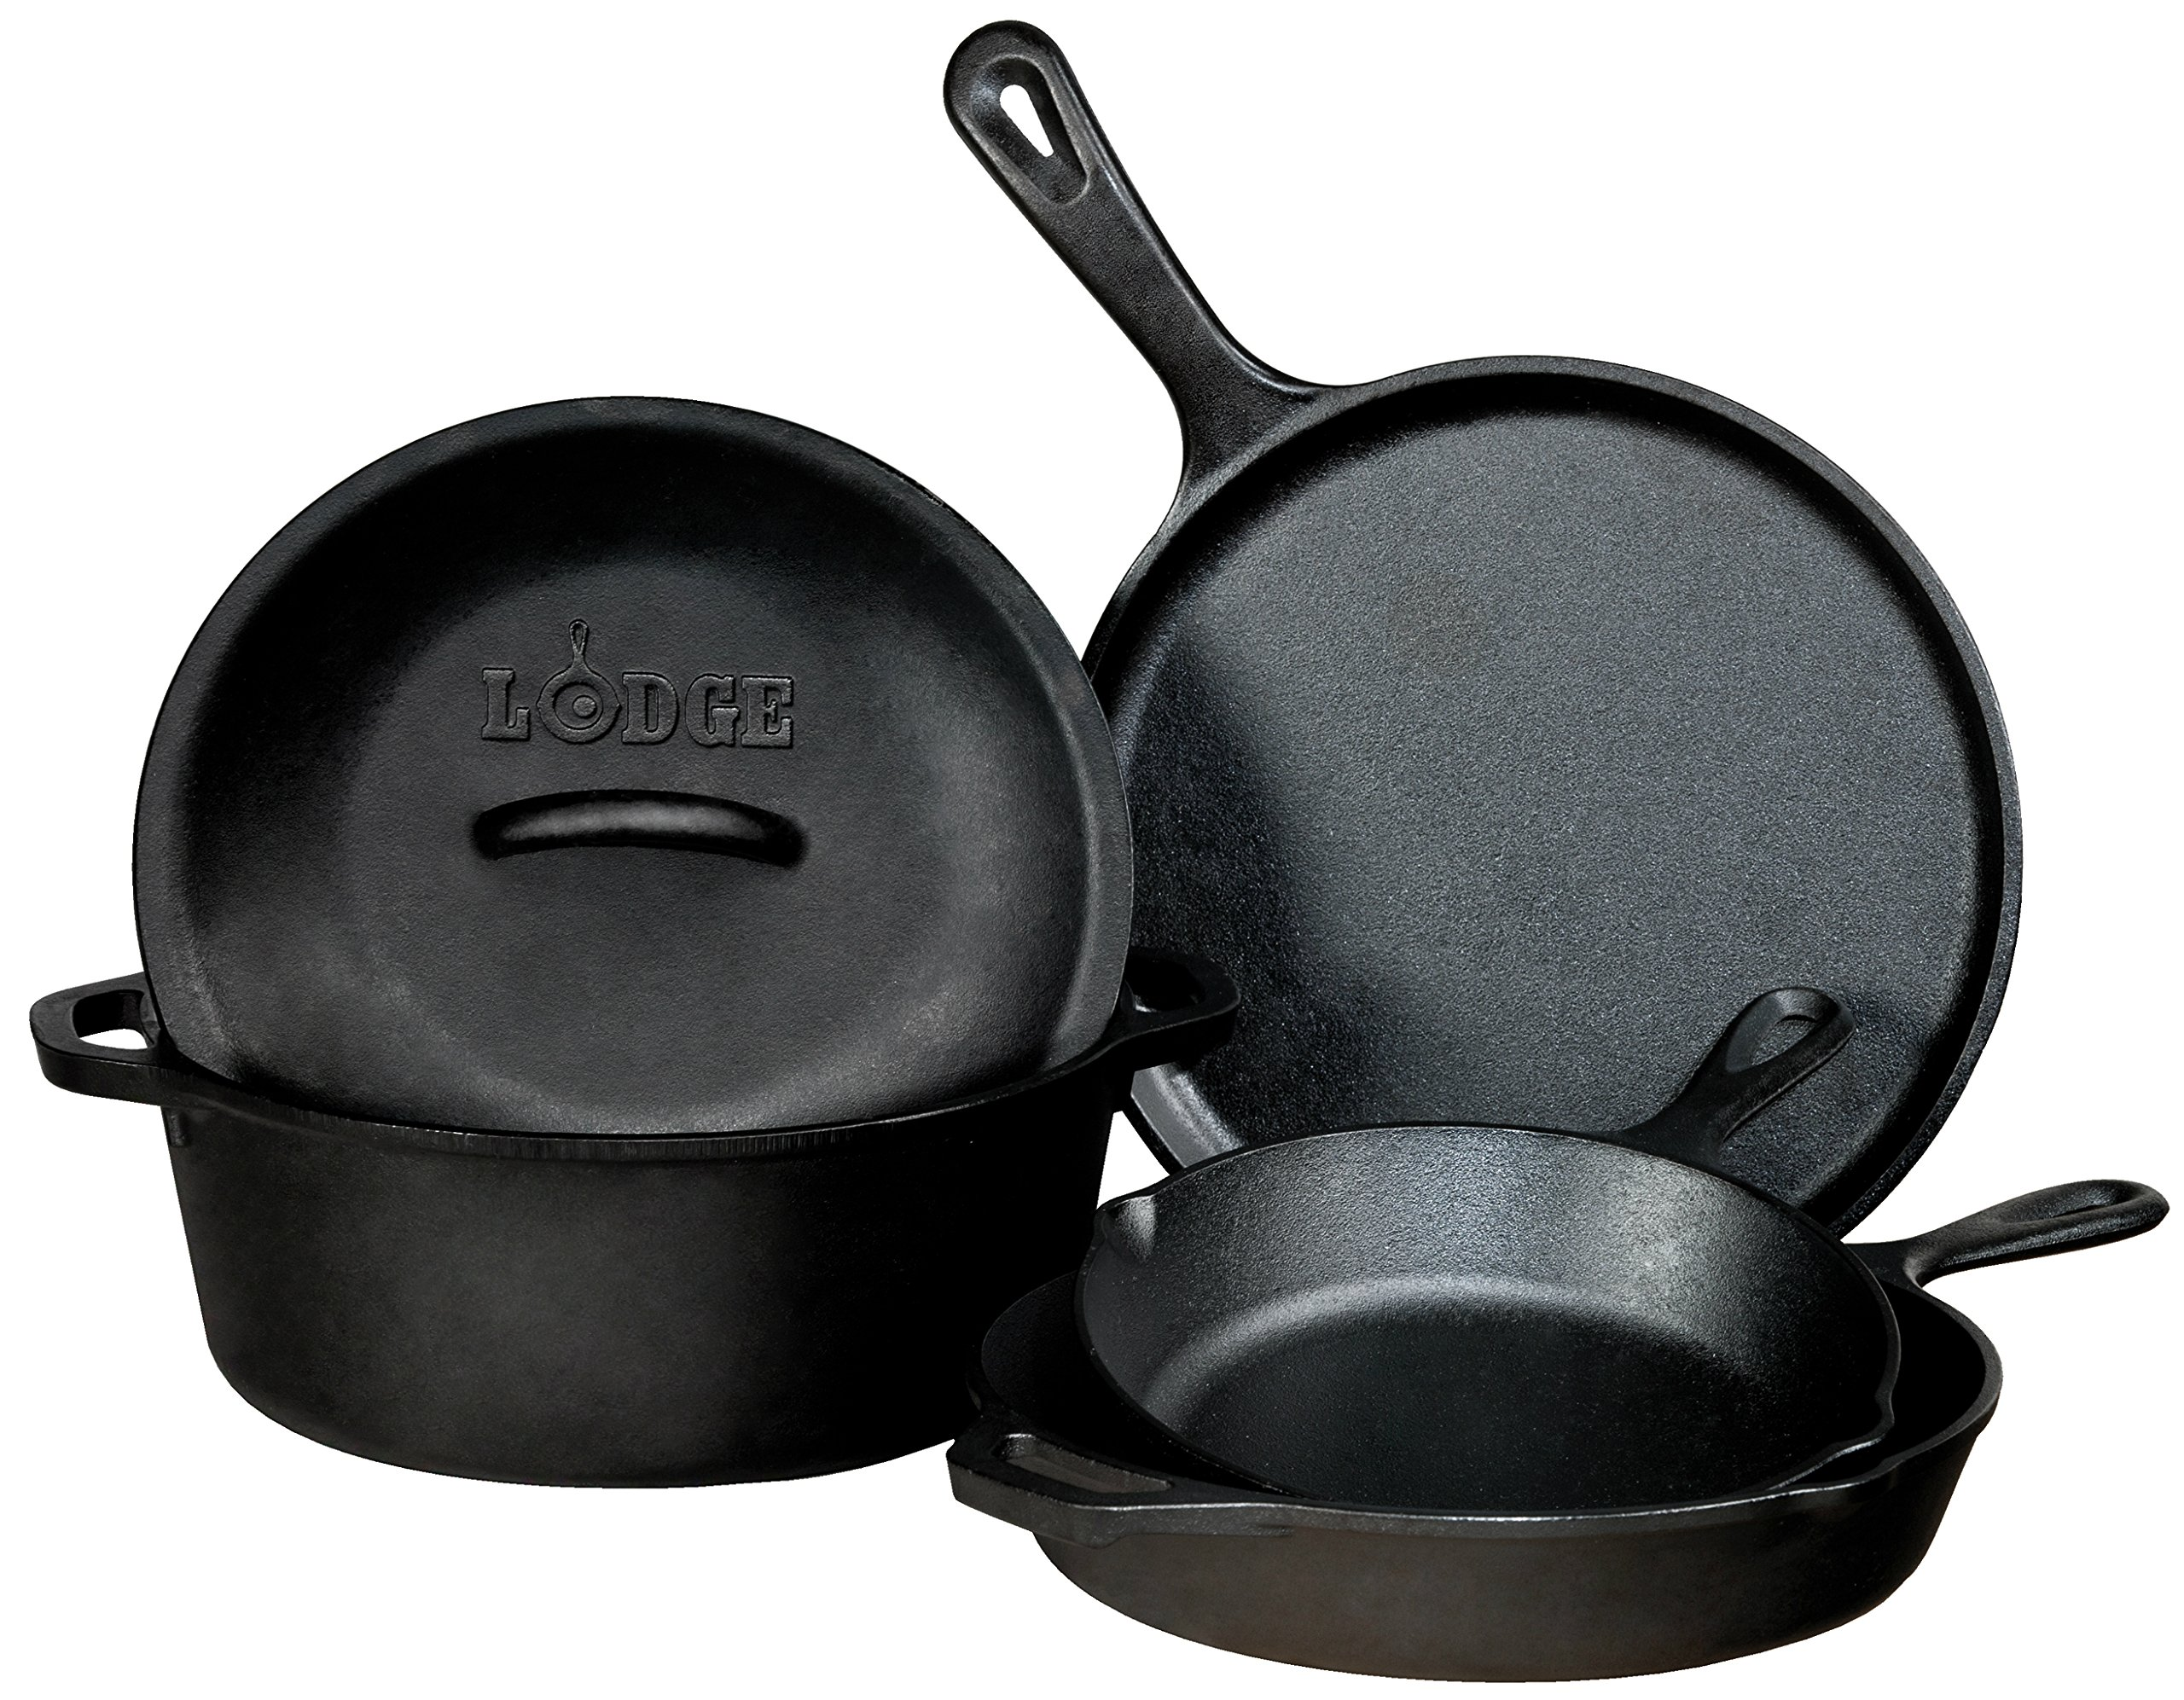 "Lodge Seasoned Cast Iron 5 Piece Bundle. 10.5"" Griddle, 8"" Skillet, 10.25"" Skillet, 10.25"" Dutch Oven, and 10.25"" Lid by Lodge (Image #1)"